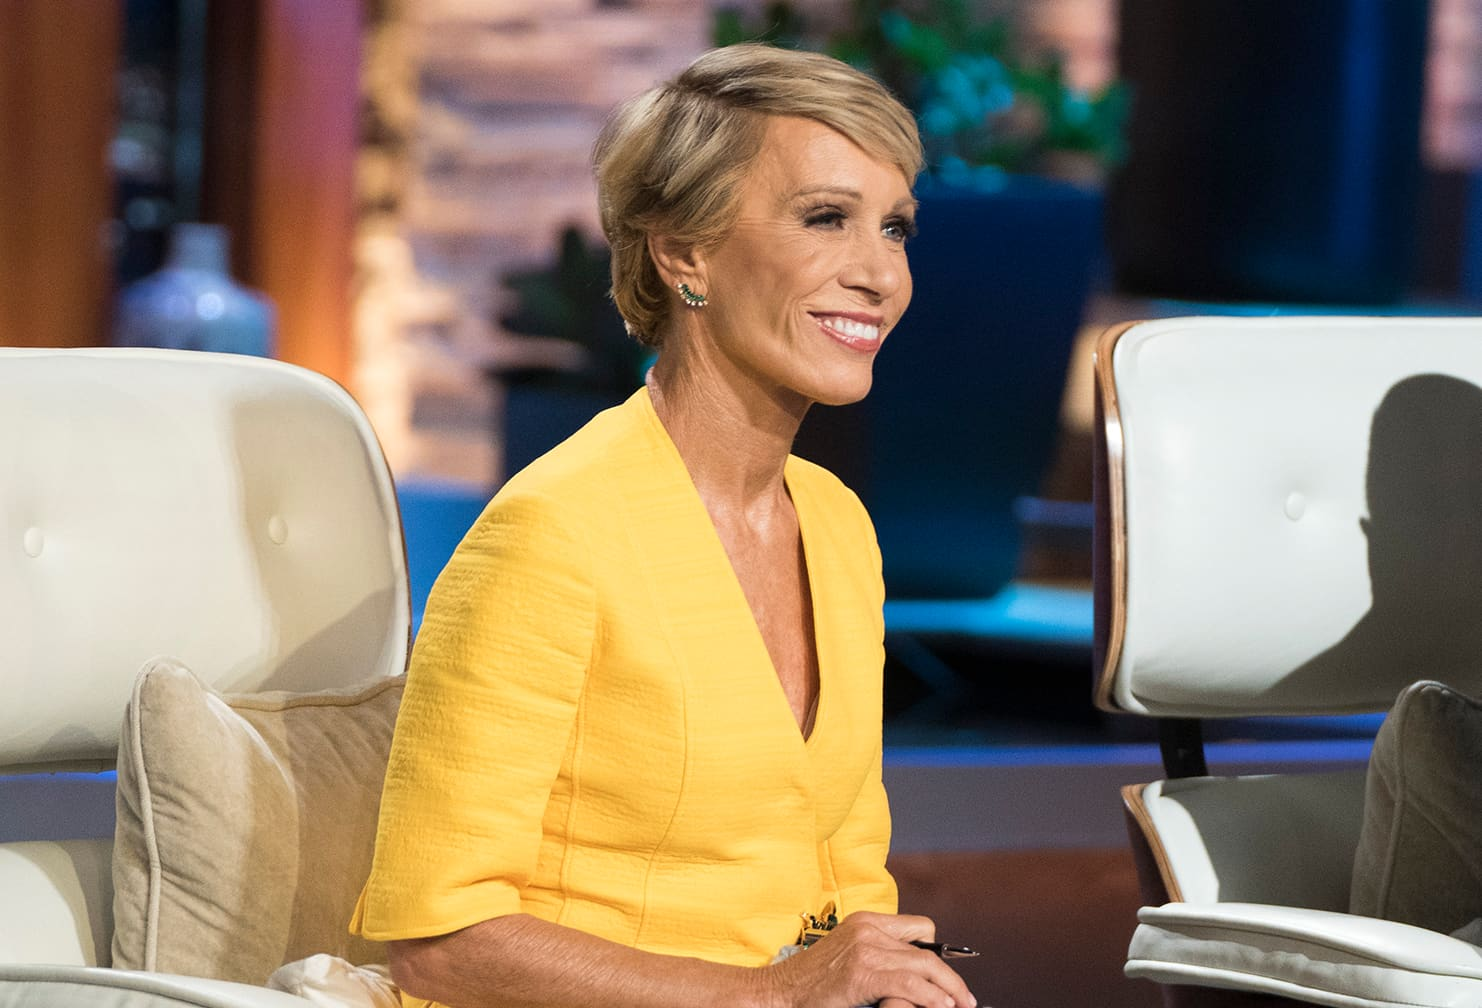 'Shark Tank' star Barbara Corcoran wishes she'd gotten this money advice in her 20s